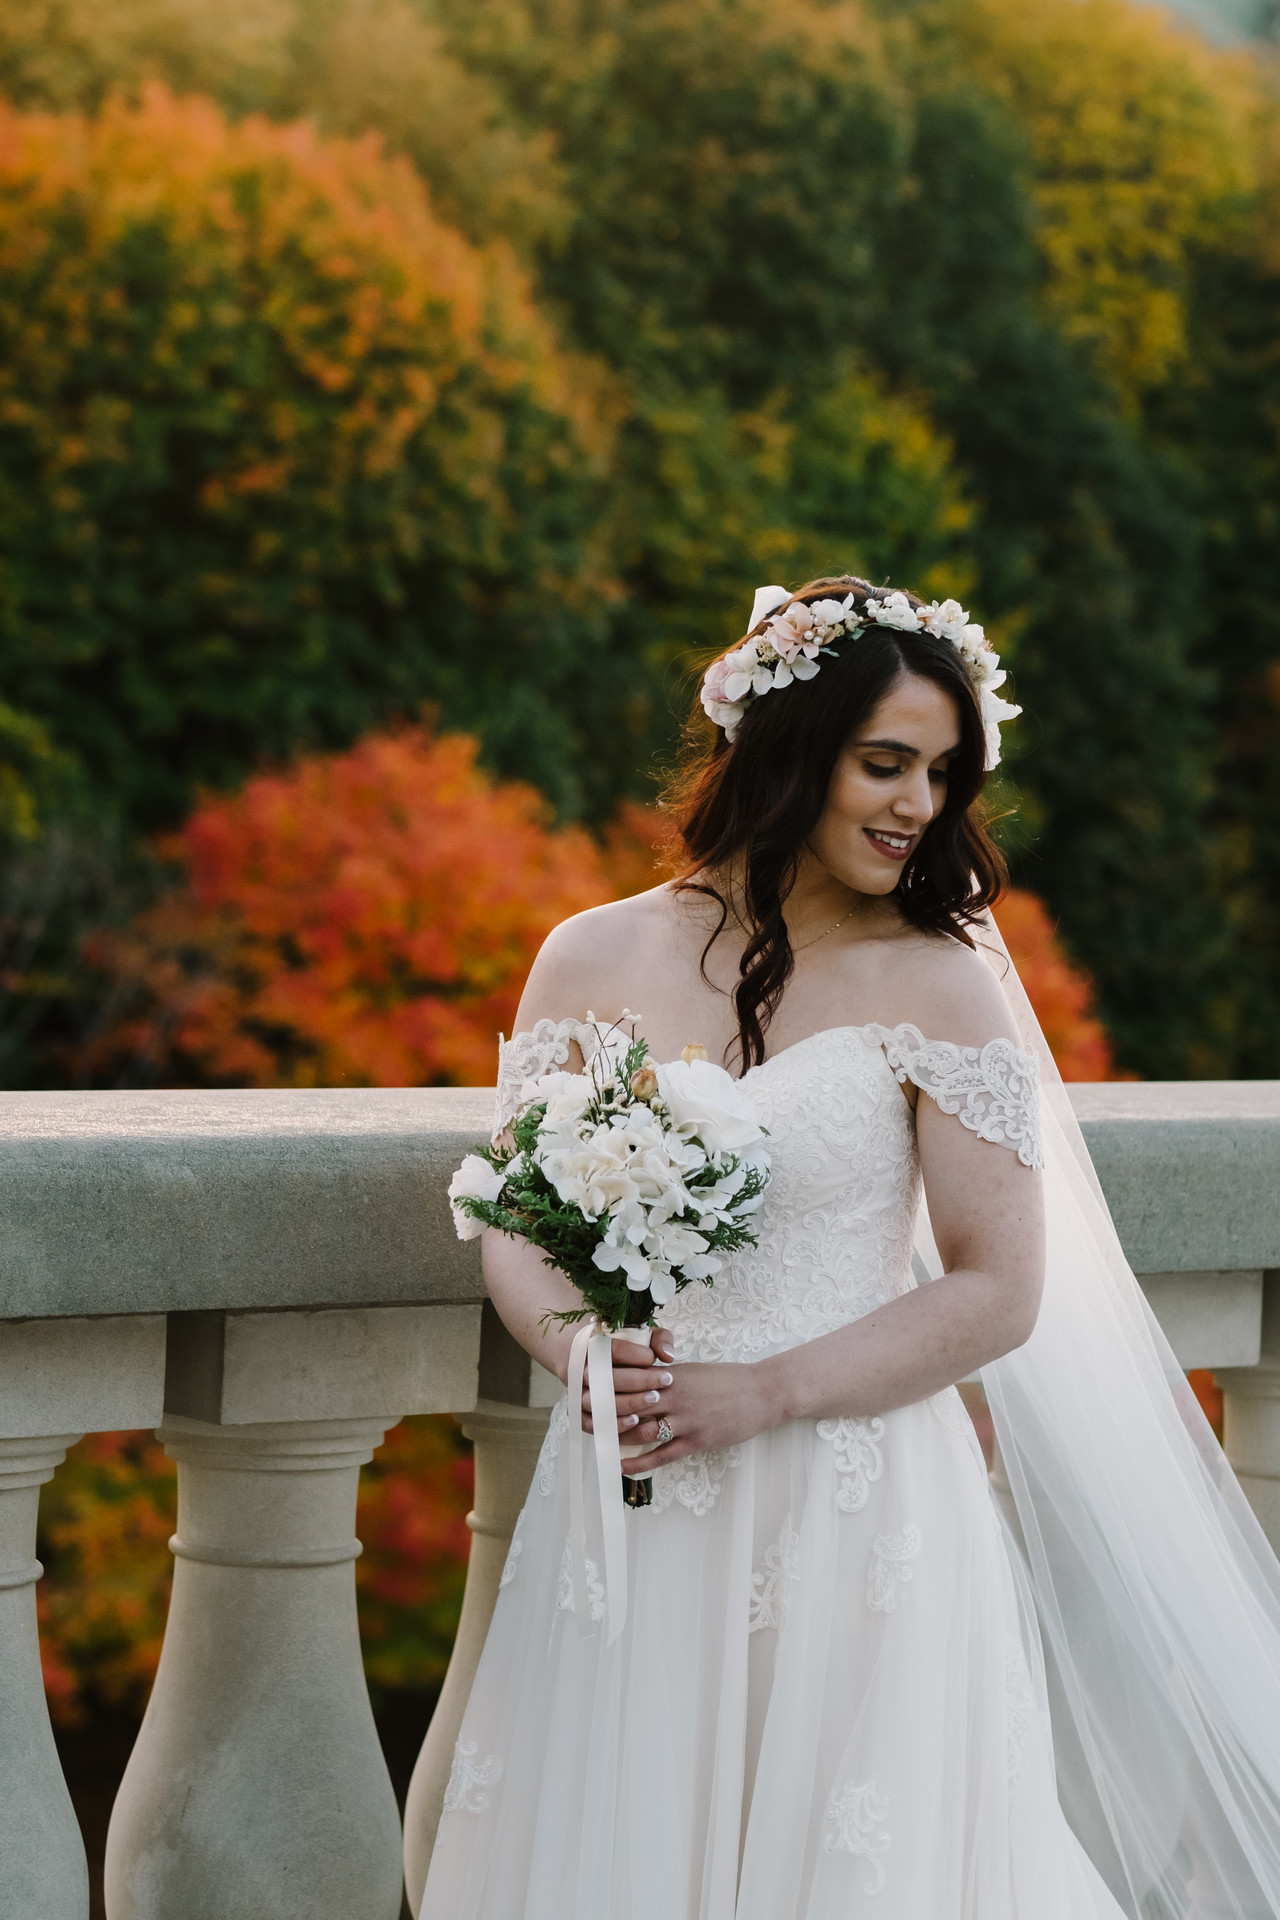 Fall bride in Ottawa near the Chateau Laurier and Major's Hill Park. Fall wedding photography session by Melanie Mathieu Photography.